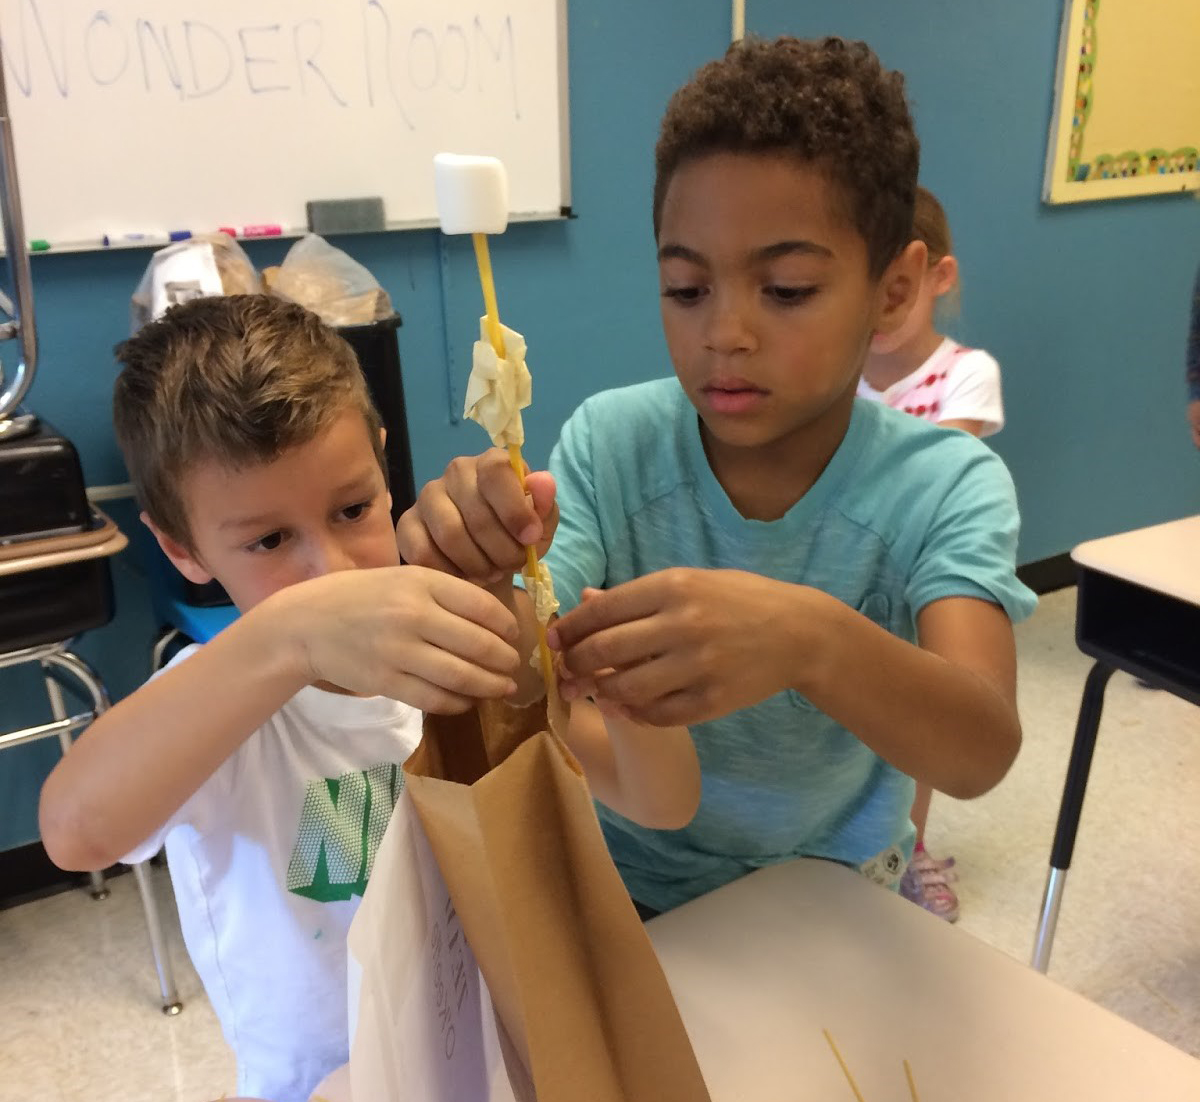 Two students work together in the Wonder Room to try and build the tallest structure using dry spaghetti, marshmallows, tap, and a brown bag